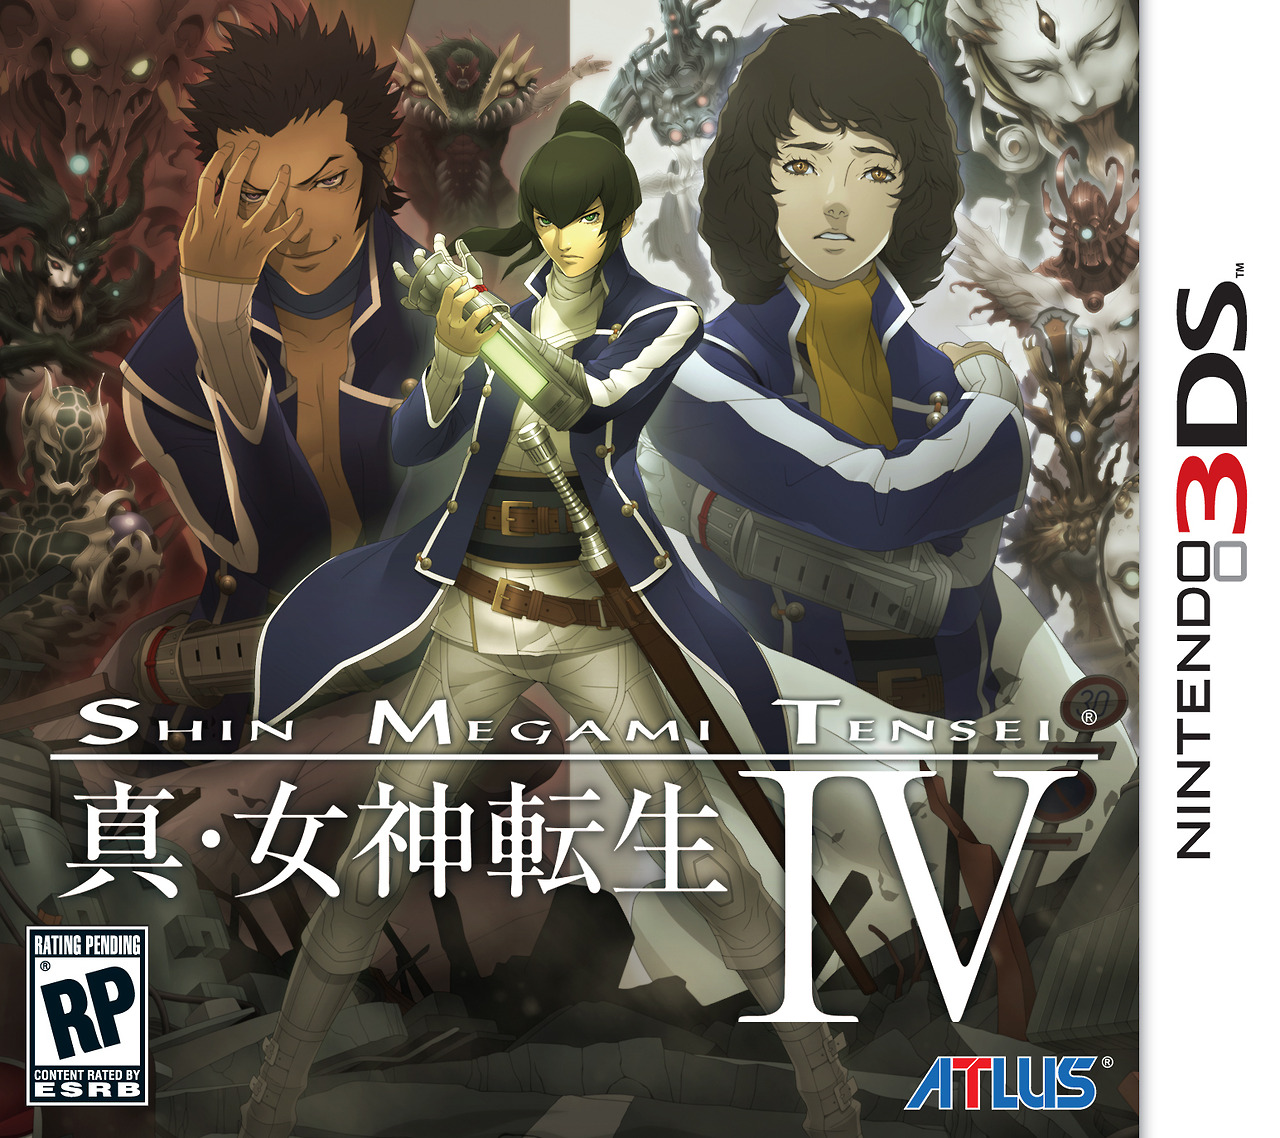 Shin Megami Tensei IV Review: A Dangerously Enticing Tale